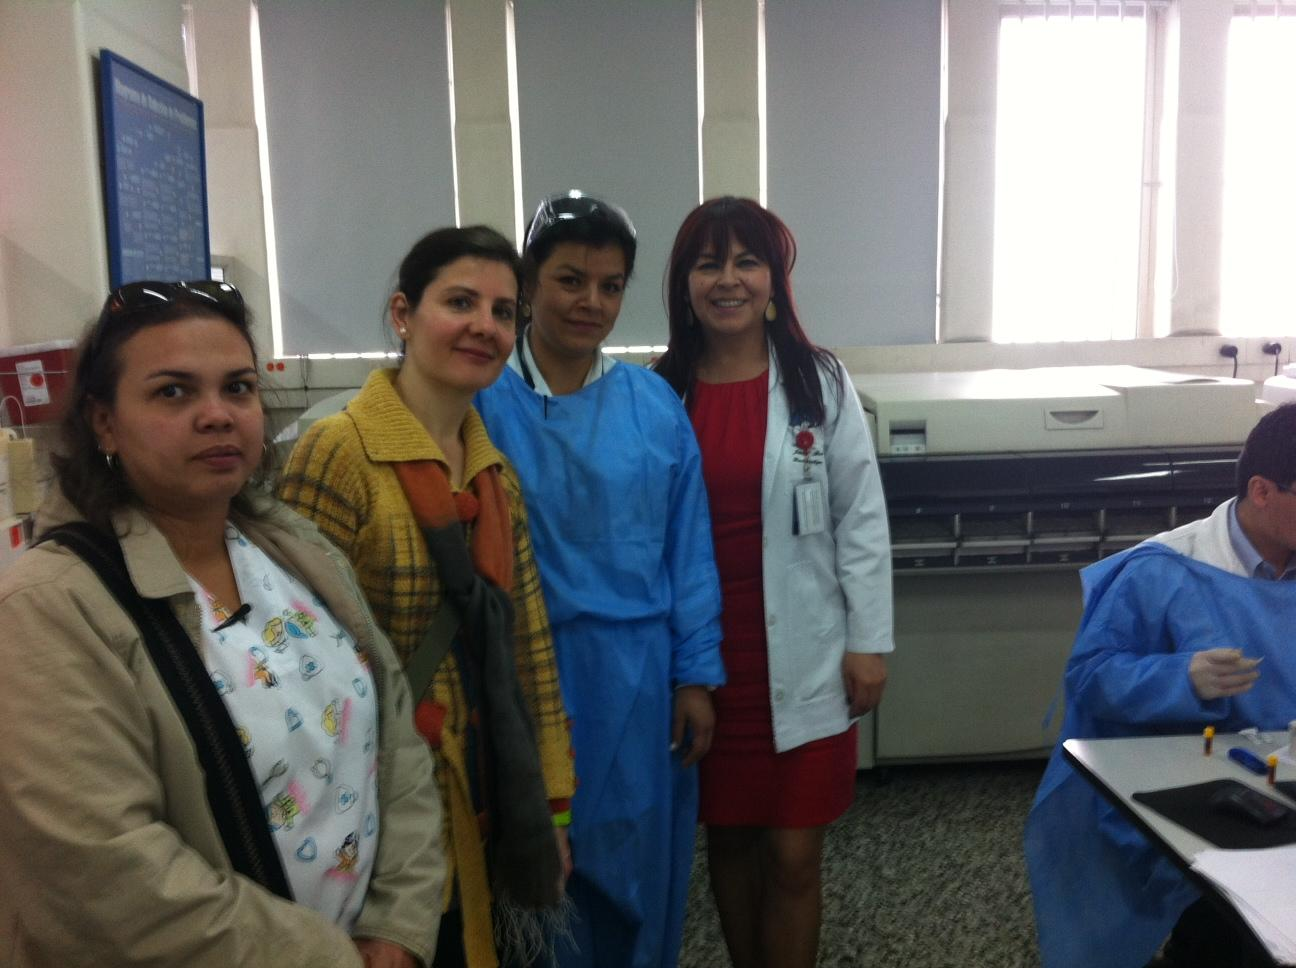 Ana Baylin meets with lab staff at San Rafael Hospital in Bogota, Colombia. The team collected and stored blood samples for a case crossover study on myocardial infarction that Baylin and her team did.